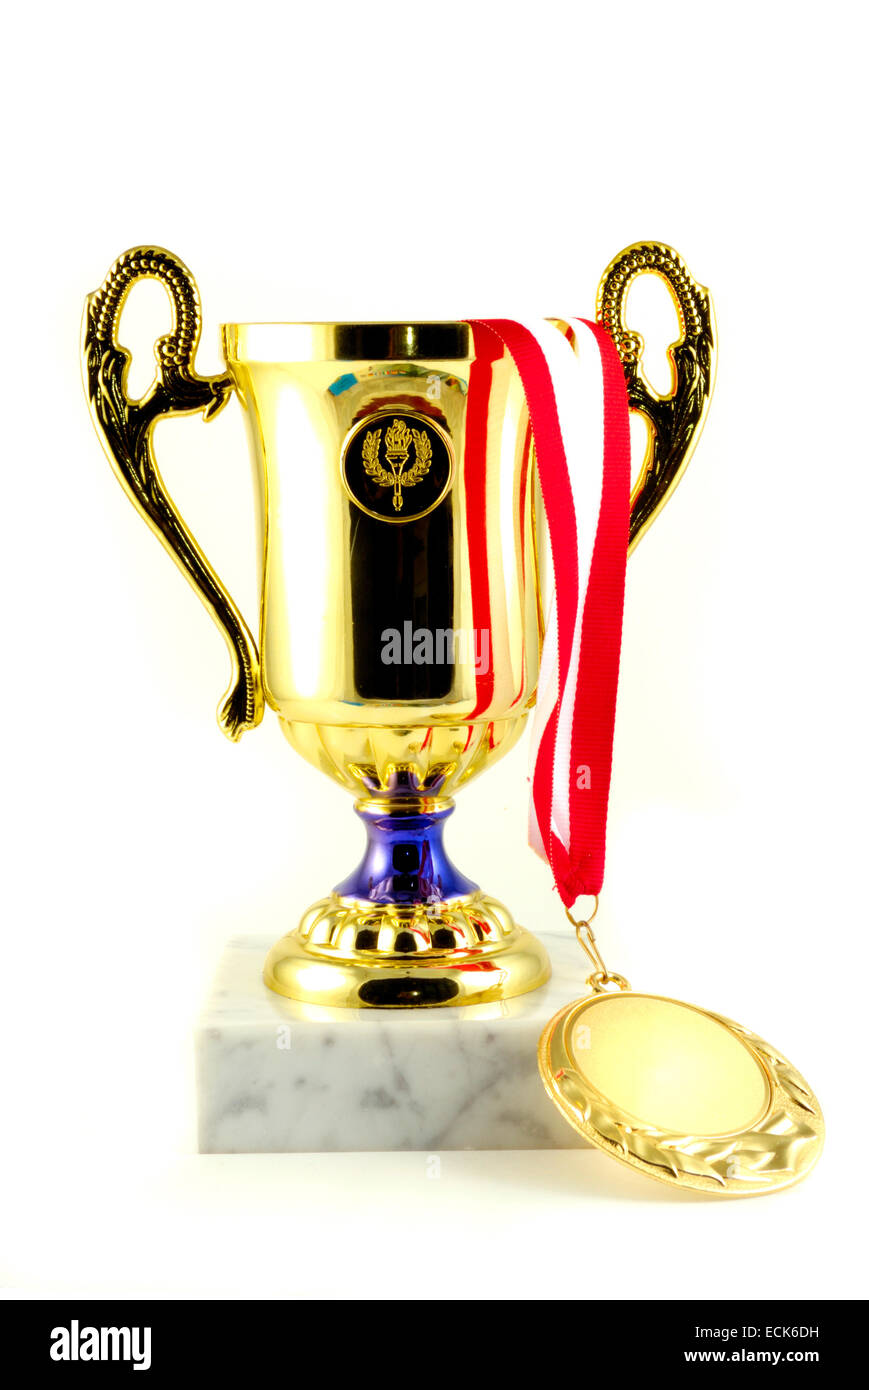 gold cup and medal, win concept - Stock Image